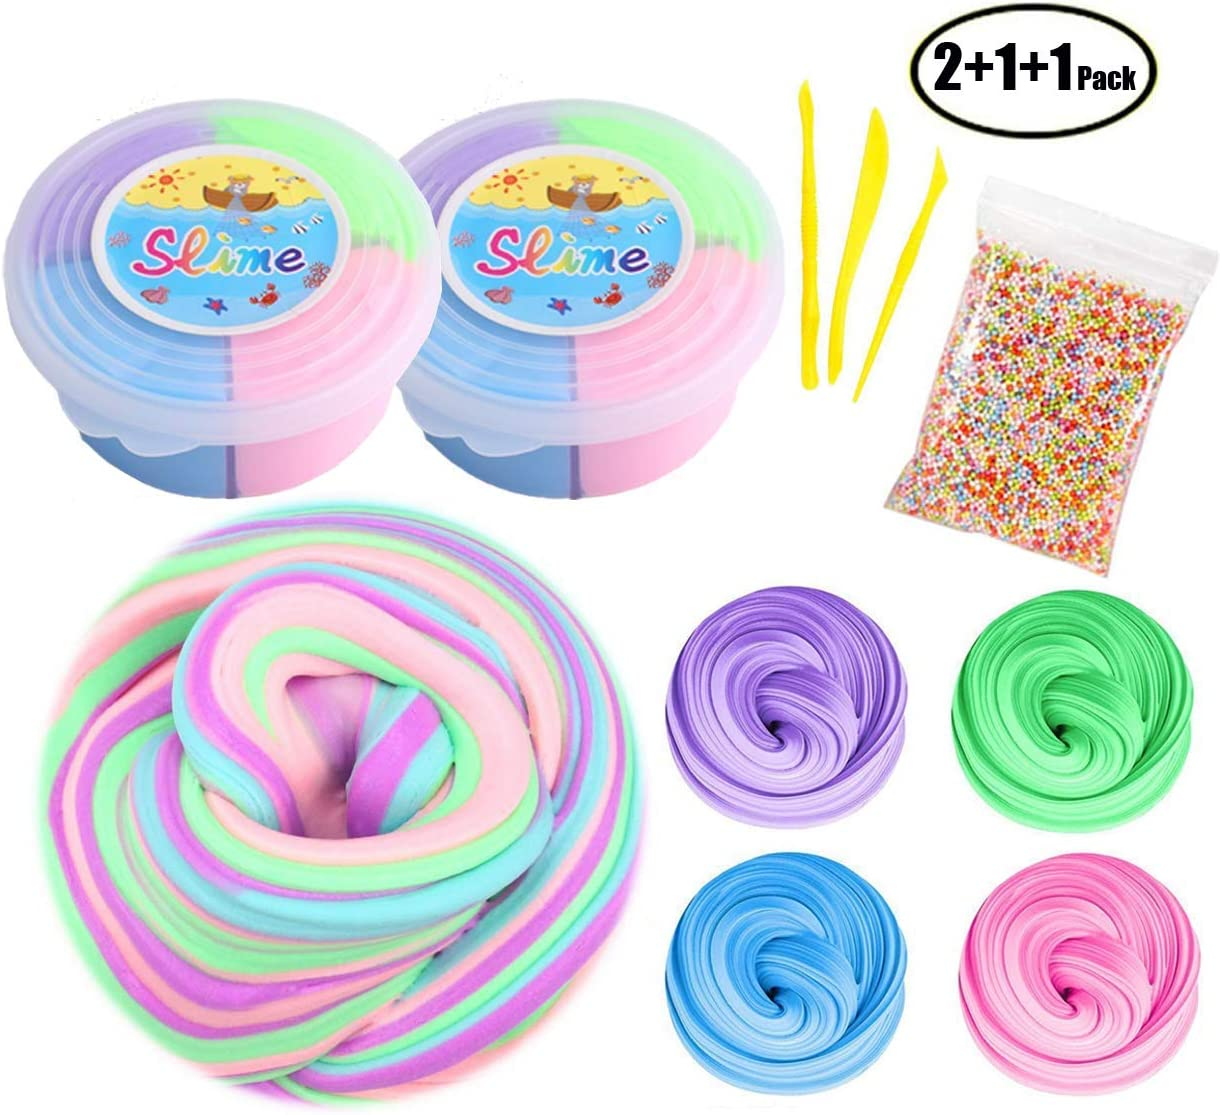 SWZY Fluffy Floam Slime Silly Putty Mud Non-Toxic Slime Kit for ...